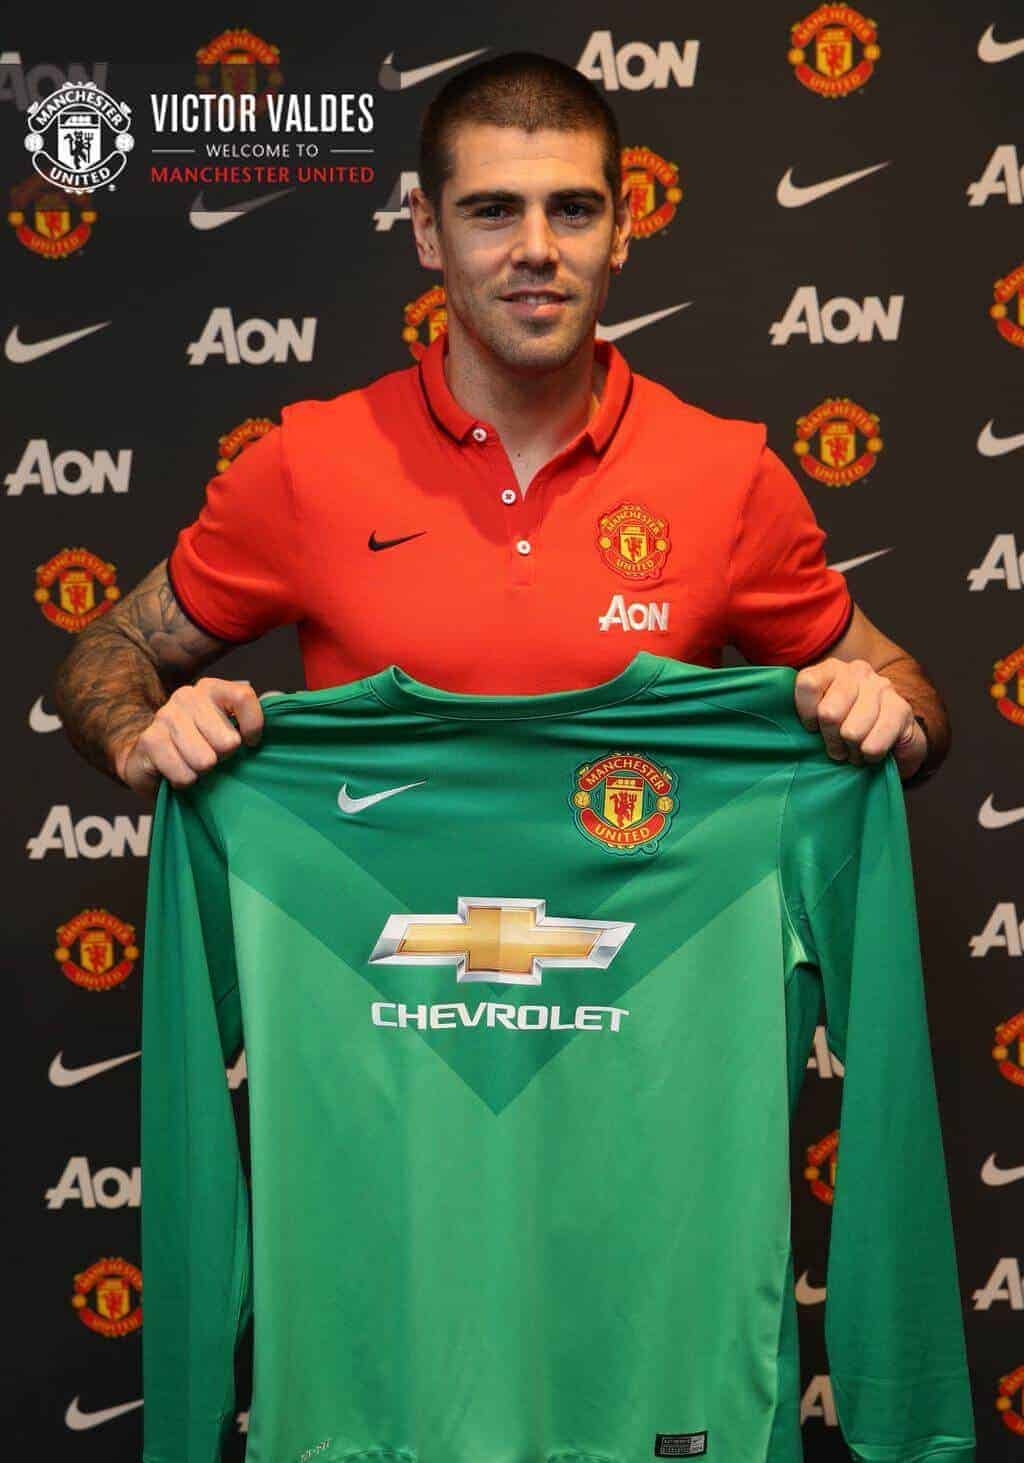 Manchester United unveil the signing of former Barcelona goalkeeper Victor Valdes